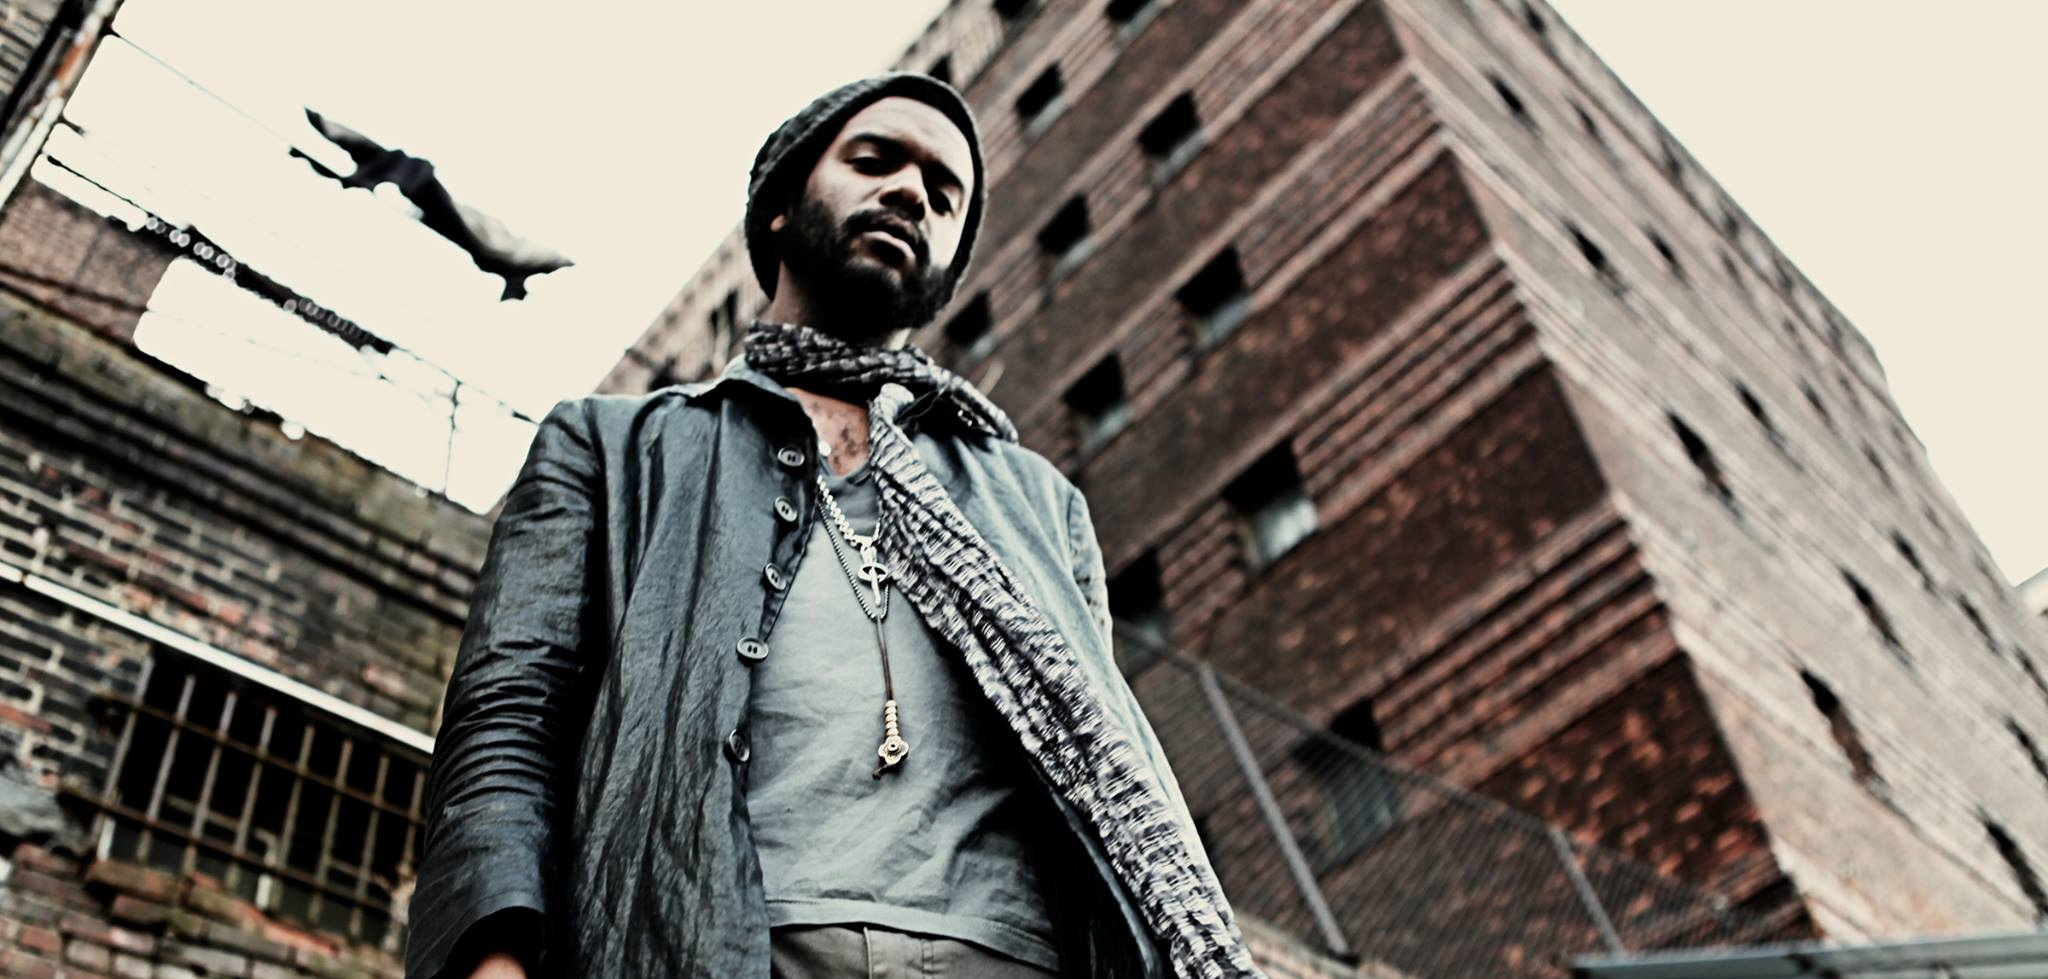 Pick-3 for RBC Bluefest, July 3 – Gary Clark, Jr., Beth Hart, and Danny Brown